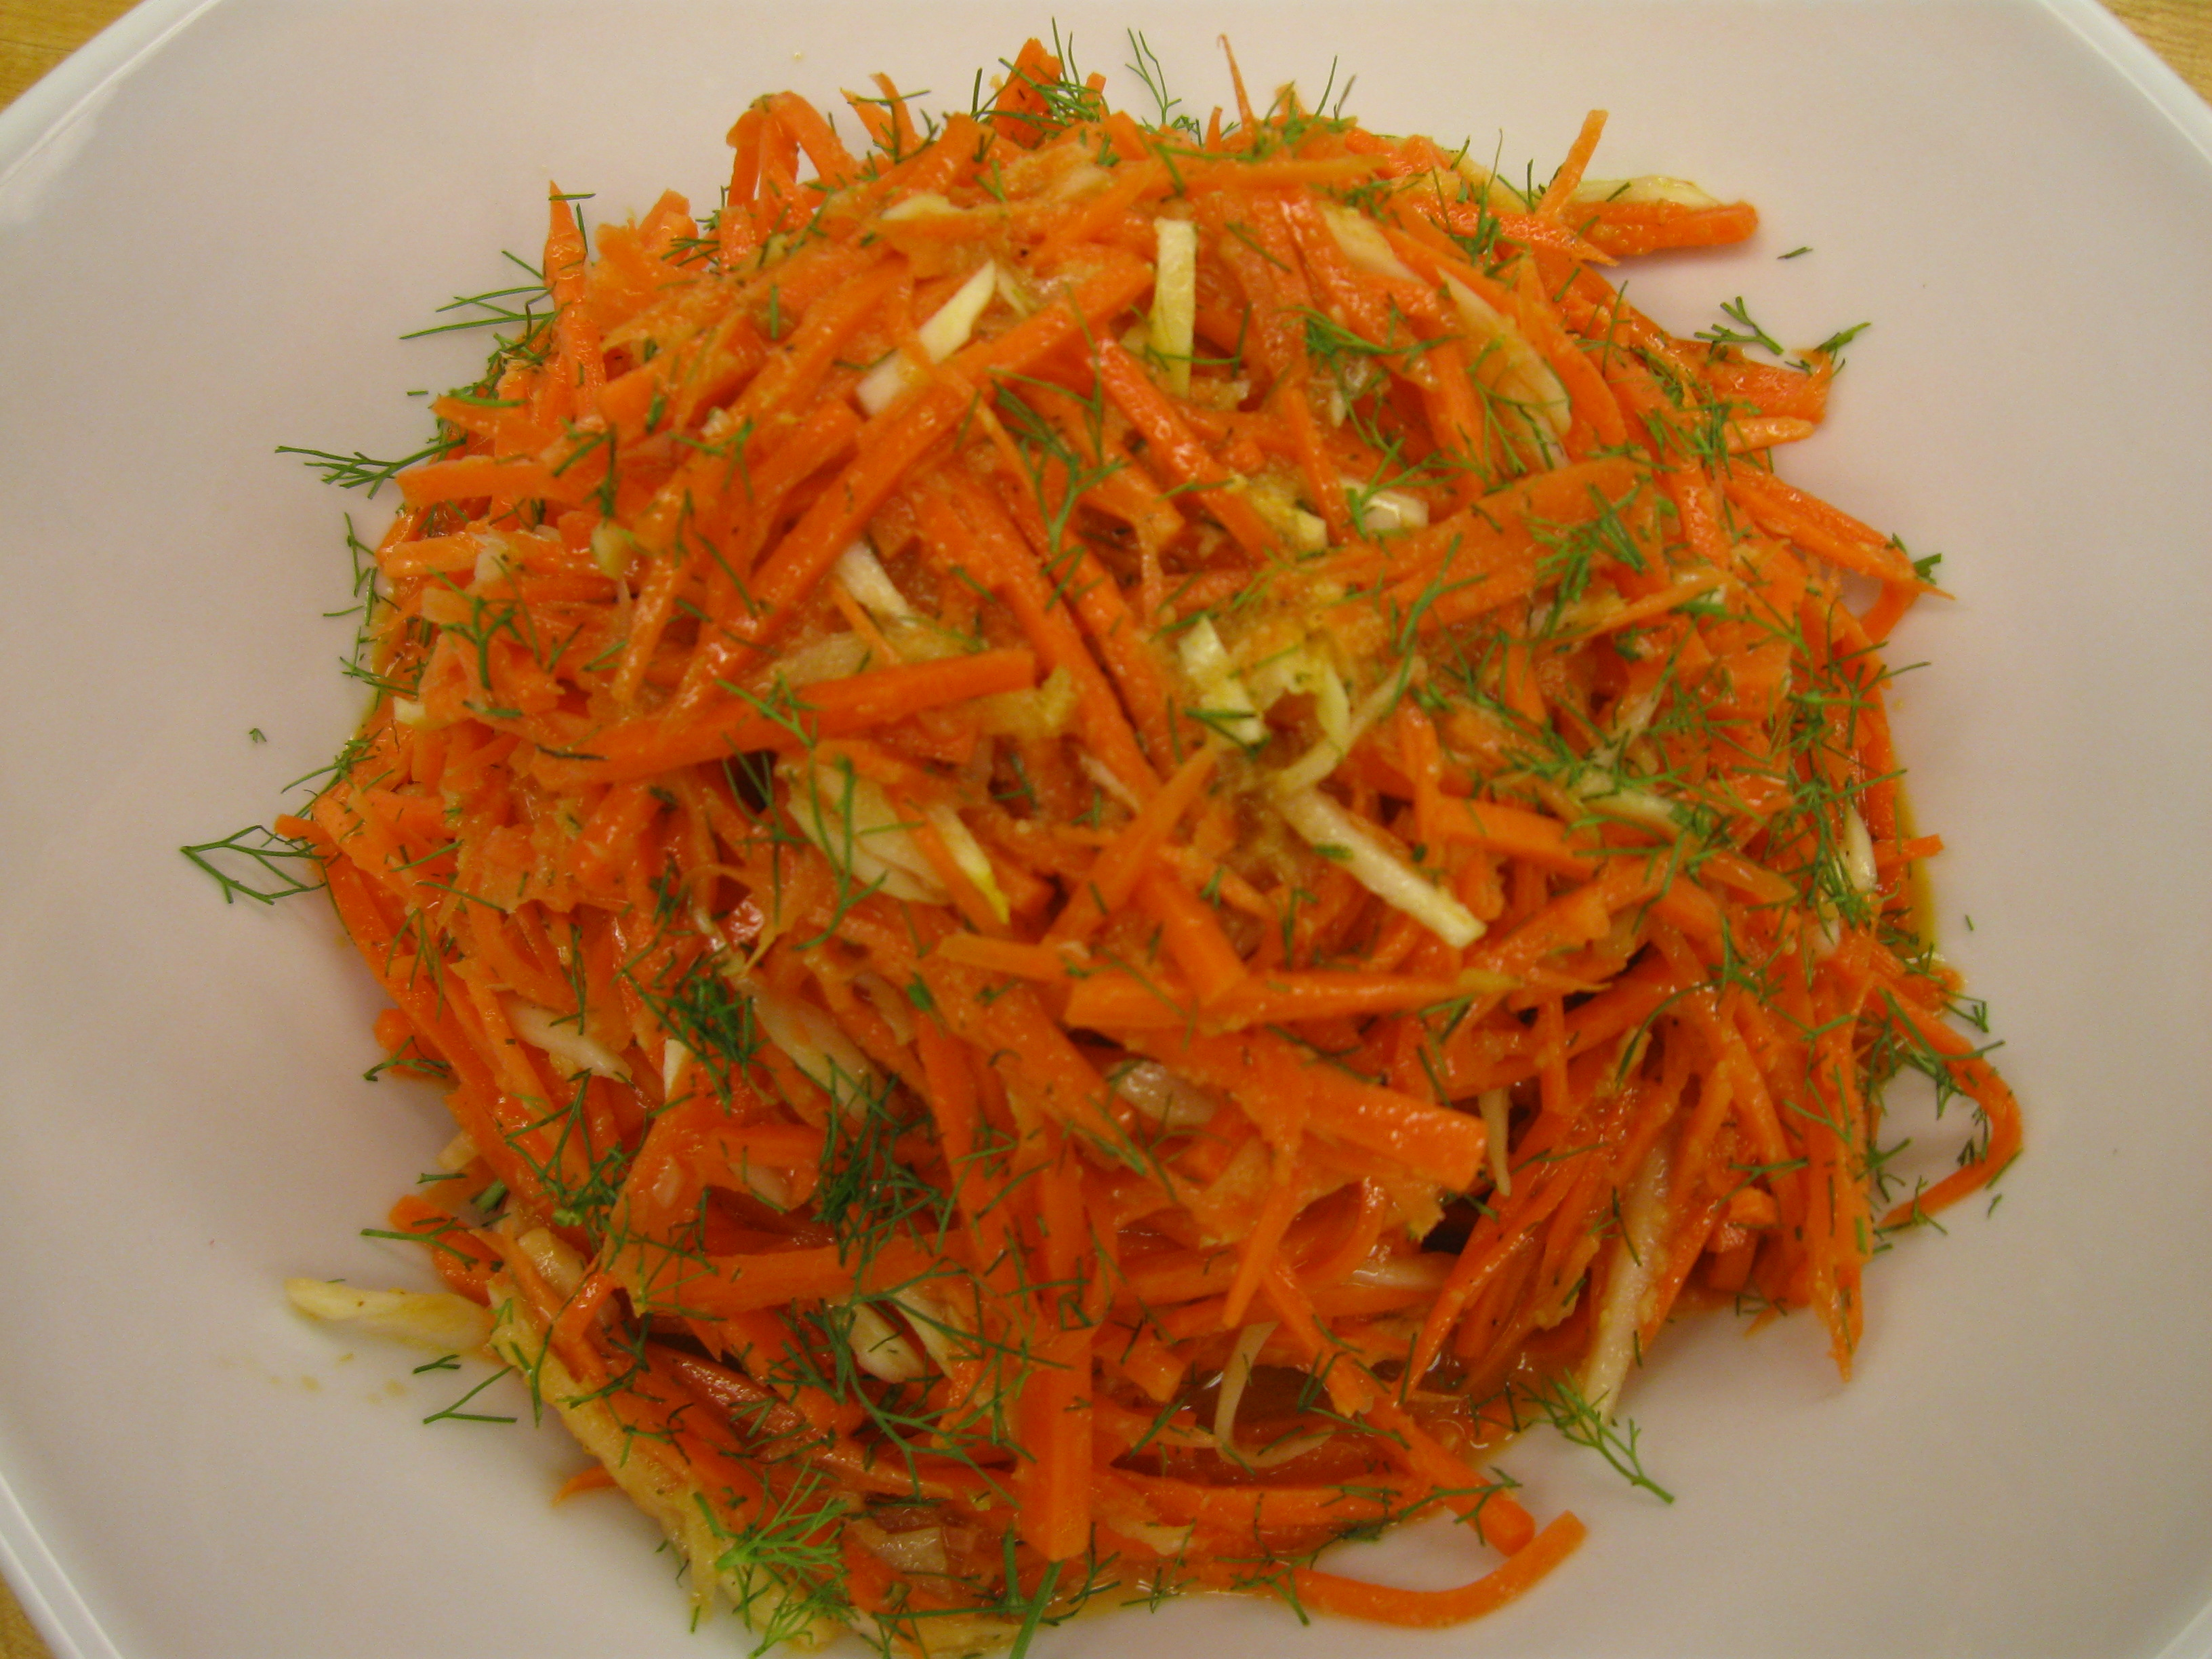 Carrot-Fennel Salad with Ginger-Horseradish Dressing